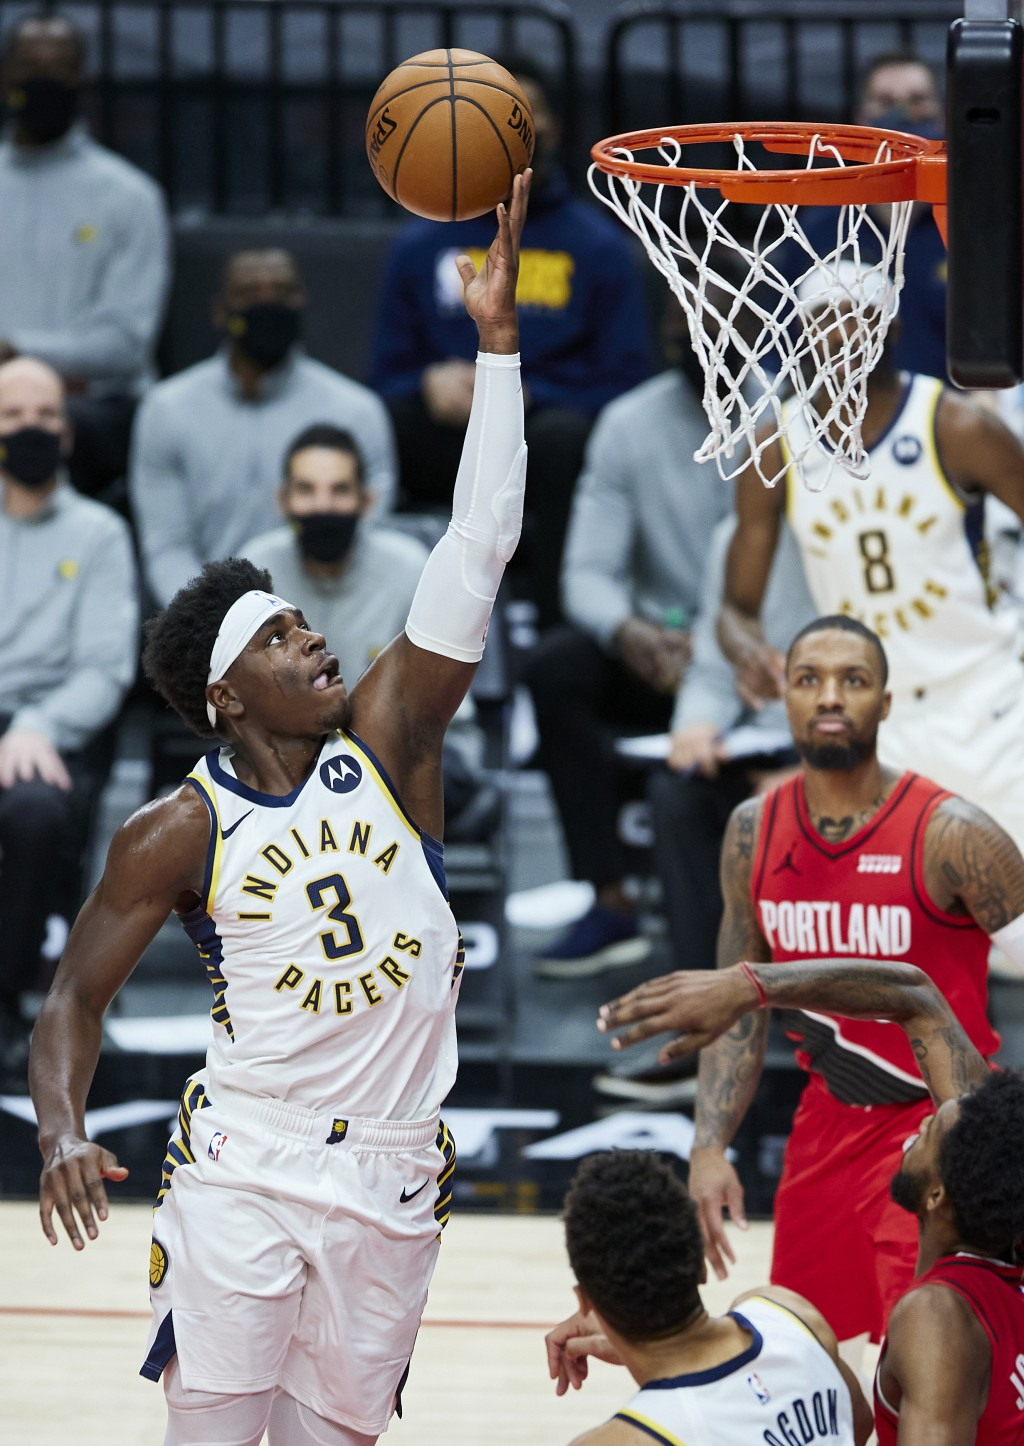 Indiana Pacers guard Aaron Holiday (3) shoots against the Portland Trail Blazers during the first half of an NBA basketball game in Portland, Ore., Th...